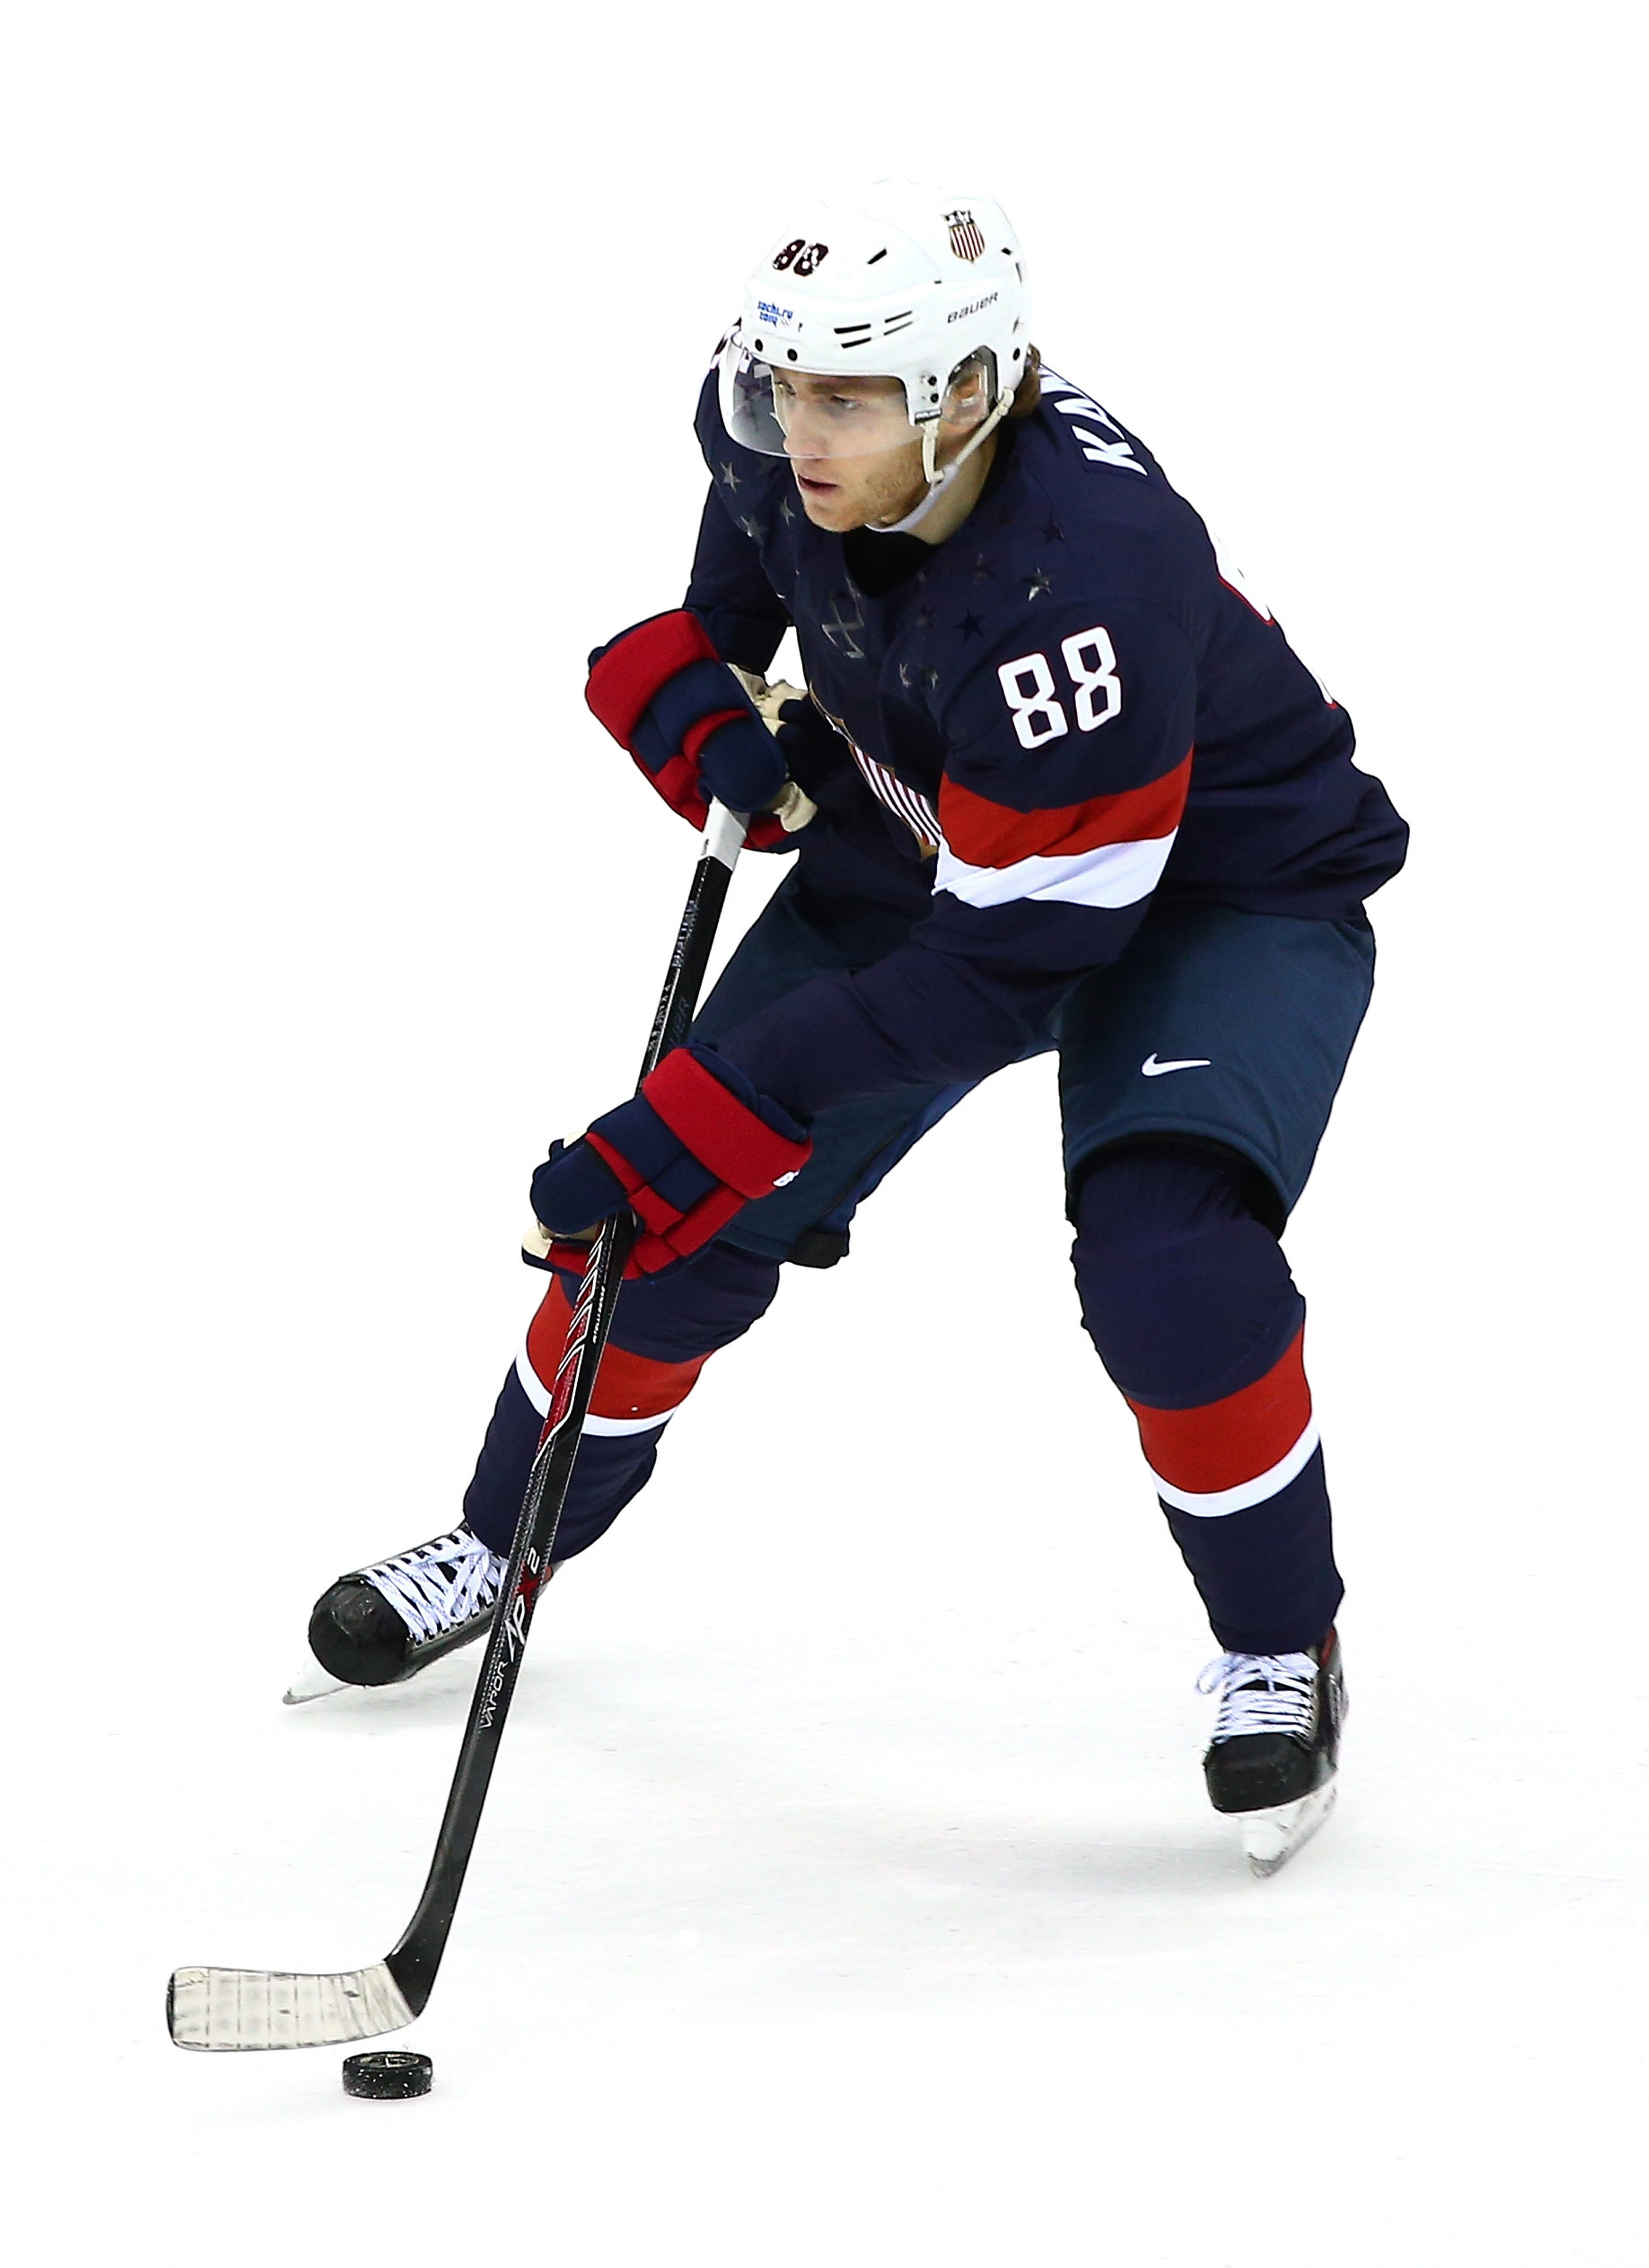 Patrick Kane controls the puck for Team USA against Russia during a preliminary game of the Winter Olympics at Bolshoy Ice Dome in Sochi, Russia.